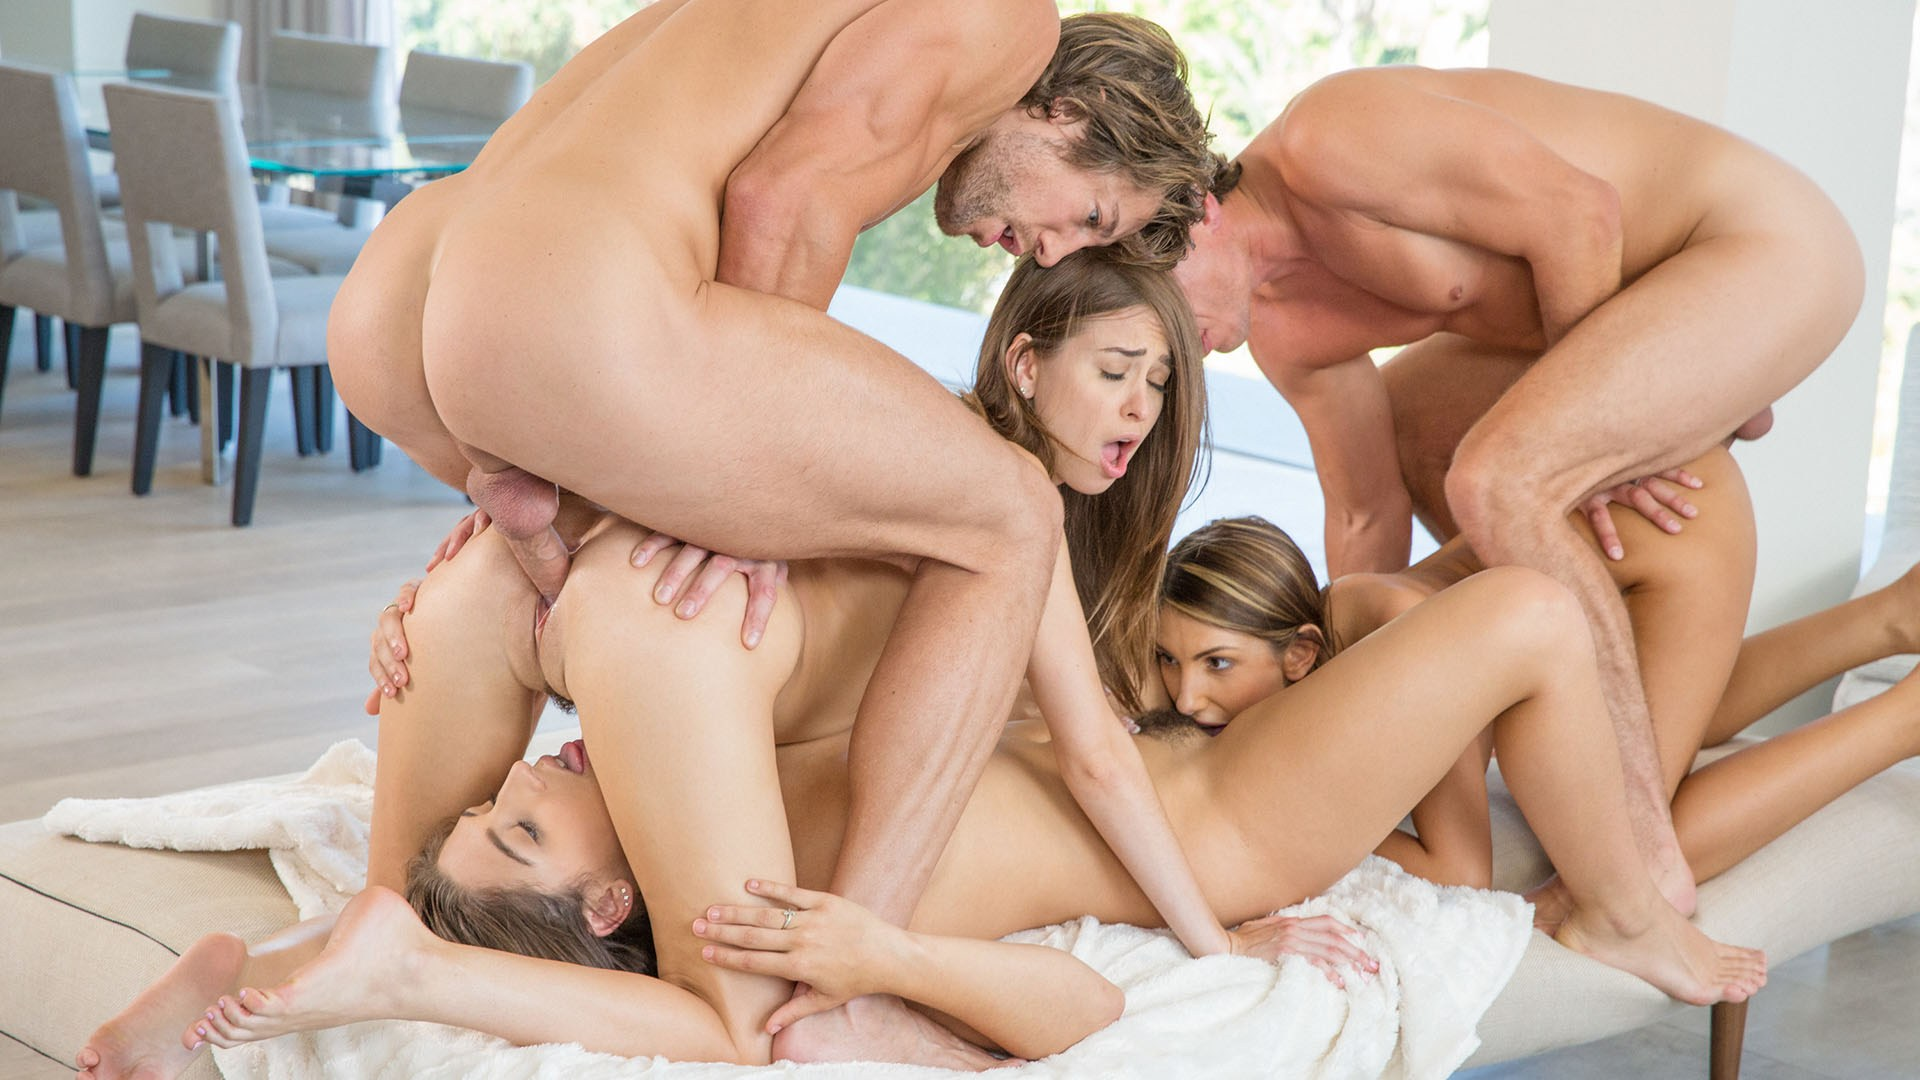 fucking position in group